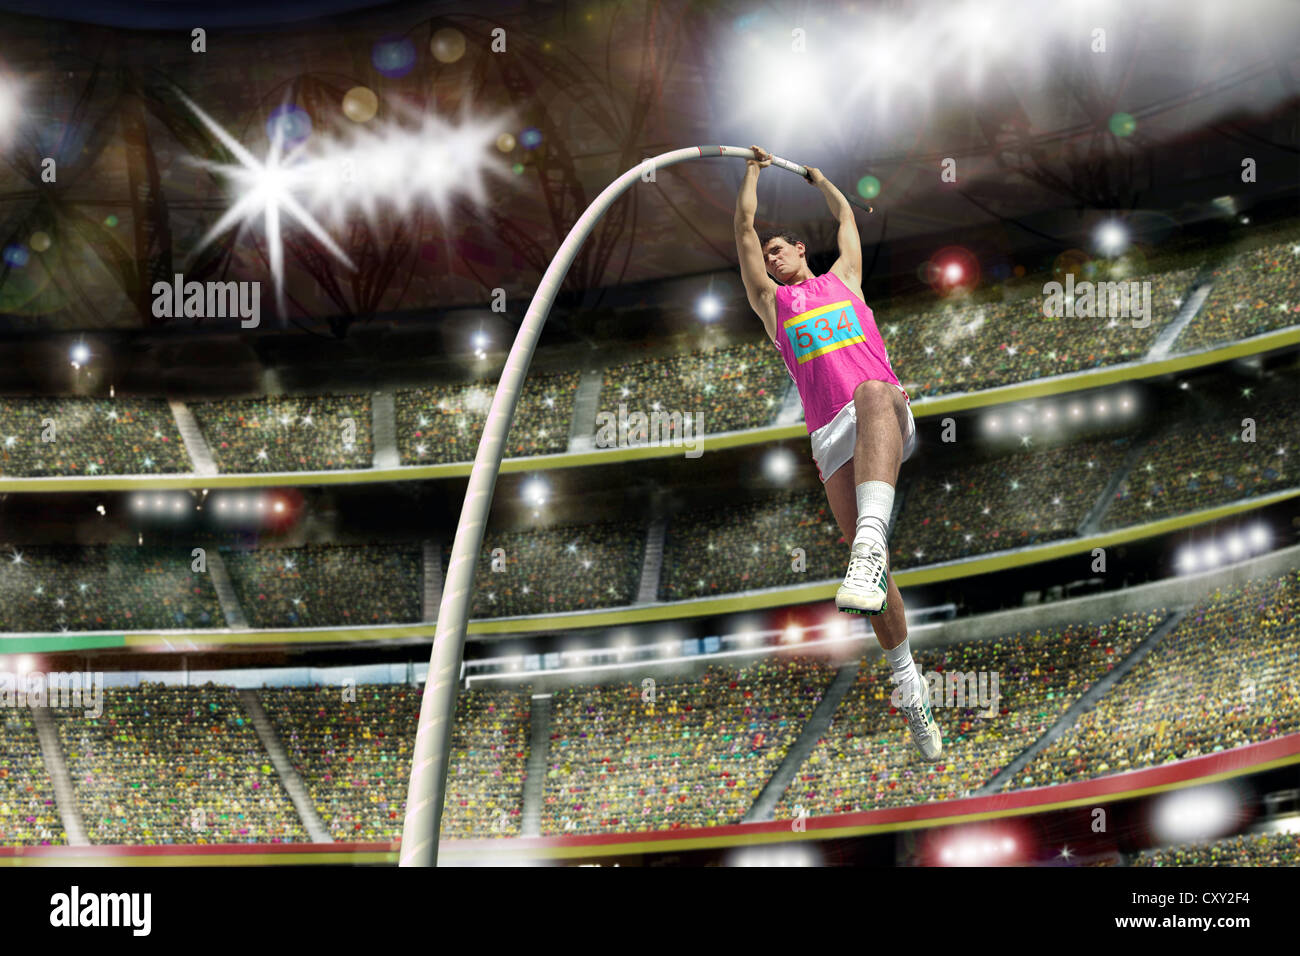 Pole vaulter, leap, grand stand, stadium - Stock Image